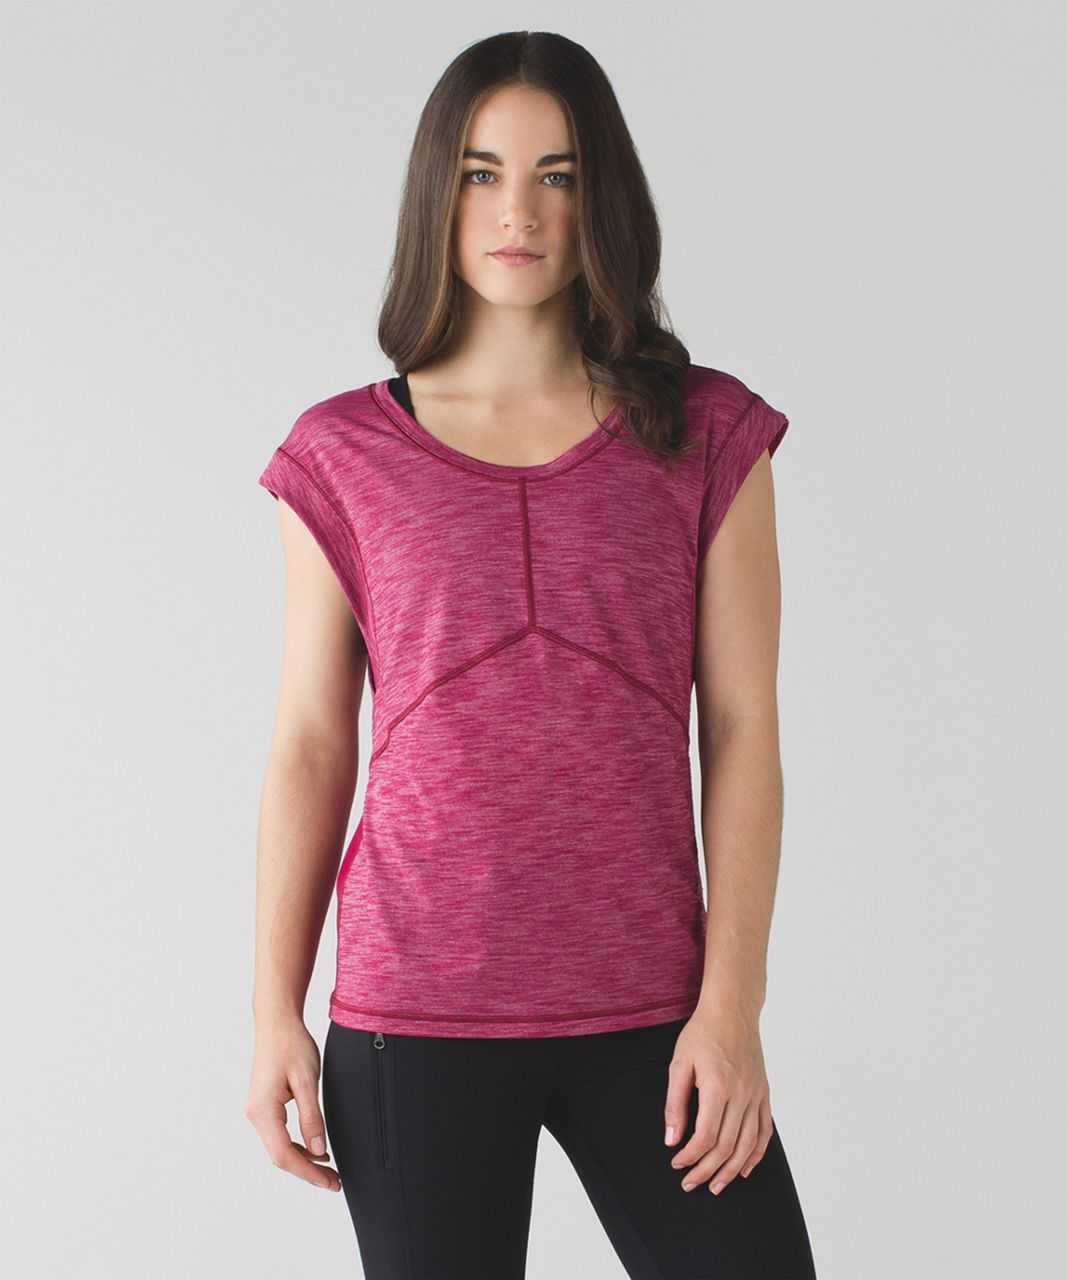 Lululemon Get Sweat Tee - Heathered Berry Rumble / Berry Rumble